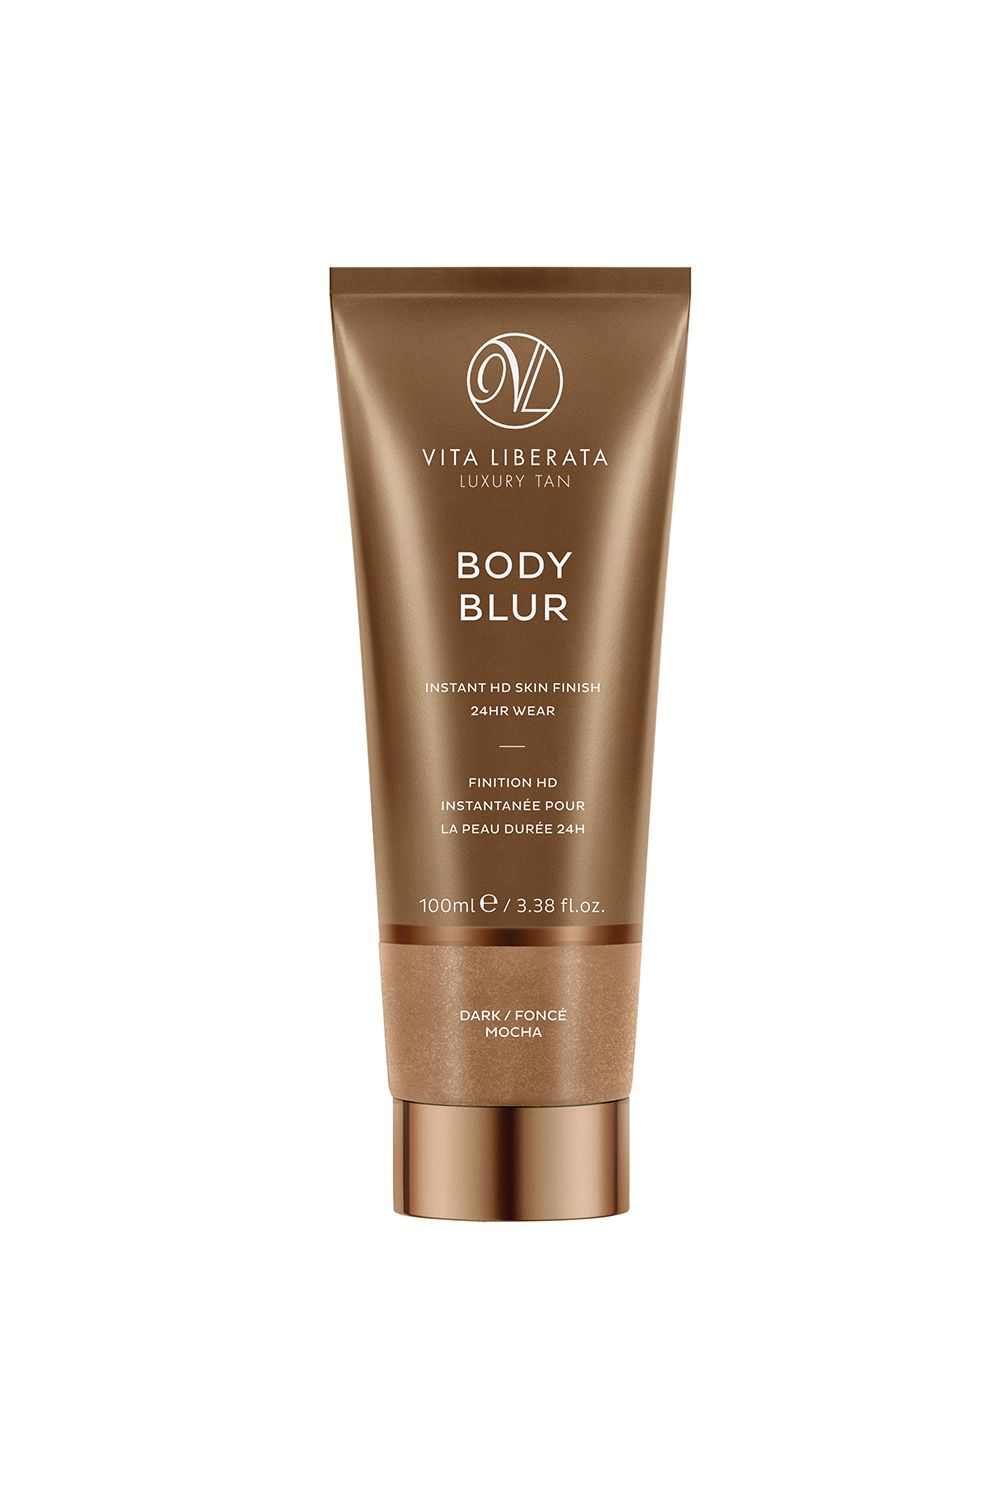 "<p>Meet your real-life Instagram filter. This wash-off bronzer won't deepen your skin tone like other self-tanners, but will instead even out discoloration and hyperpigmentation for an airbrushed-looking finish.</p><p><i data-redactor-tag=""i"">Vita Liberata Body Blur, $45</i></p><p><strong data-redactor-tag=""strong"">BUY IT: </strong><a href=""https://www.vitaliberata.com/body-blur-instant-skin-finish-dark/""><strong data-redactor-tag=""strong"">vitaliberata.com</strong></a><strong data-redactor-tag=""strong"">.</strong></p>"